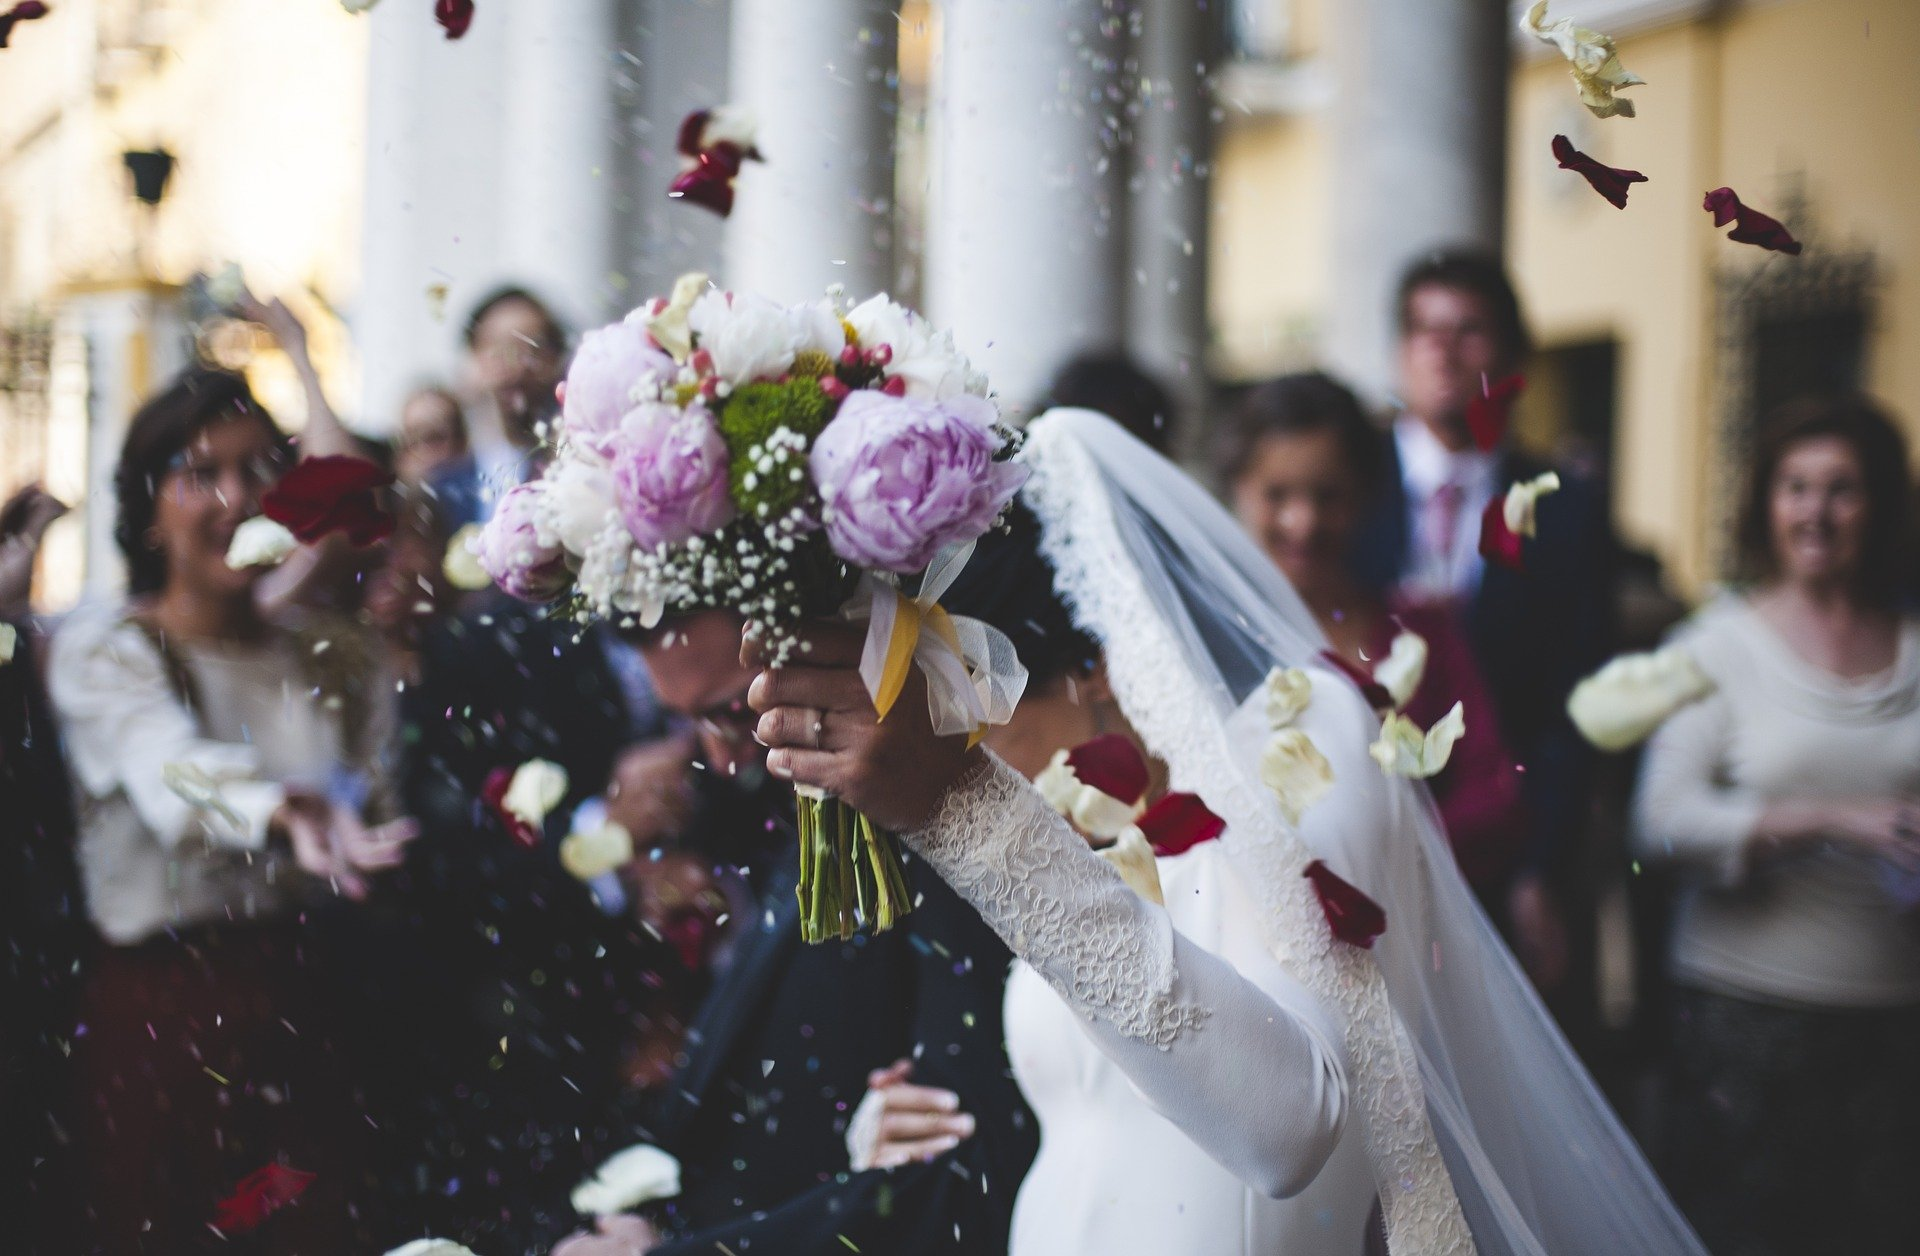 £25m for Scotland's COVID-hit Wedding Industry